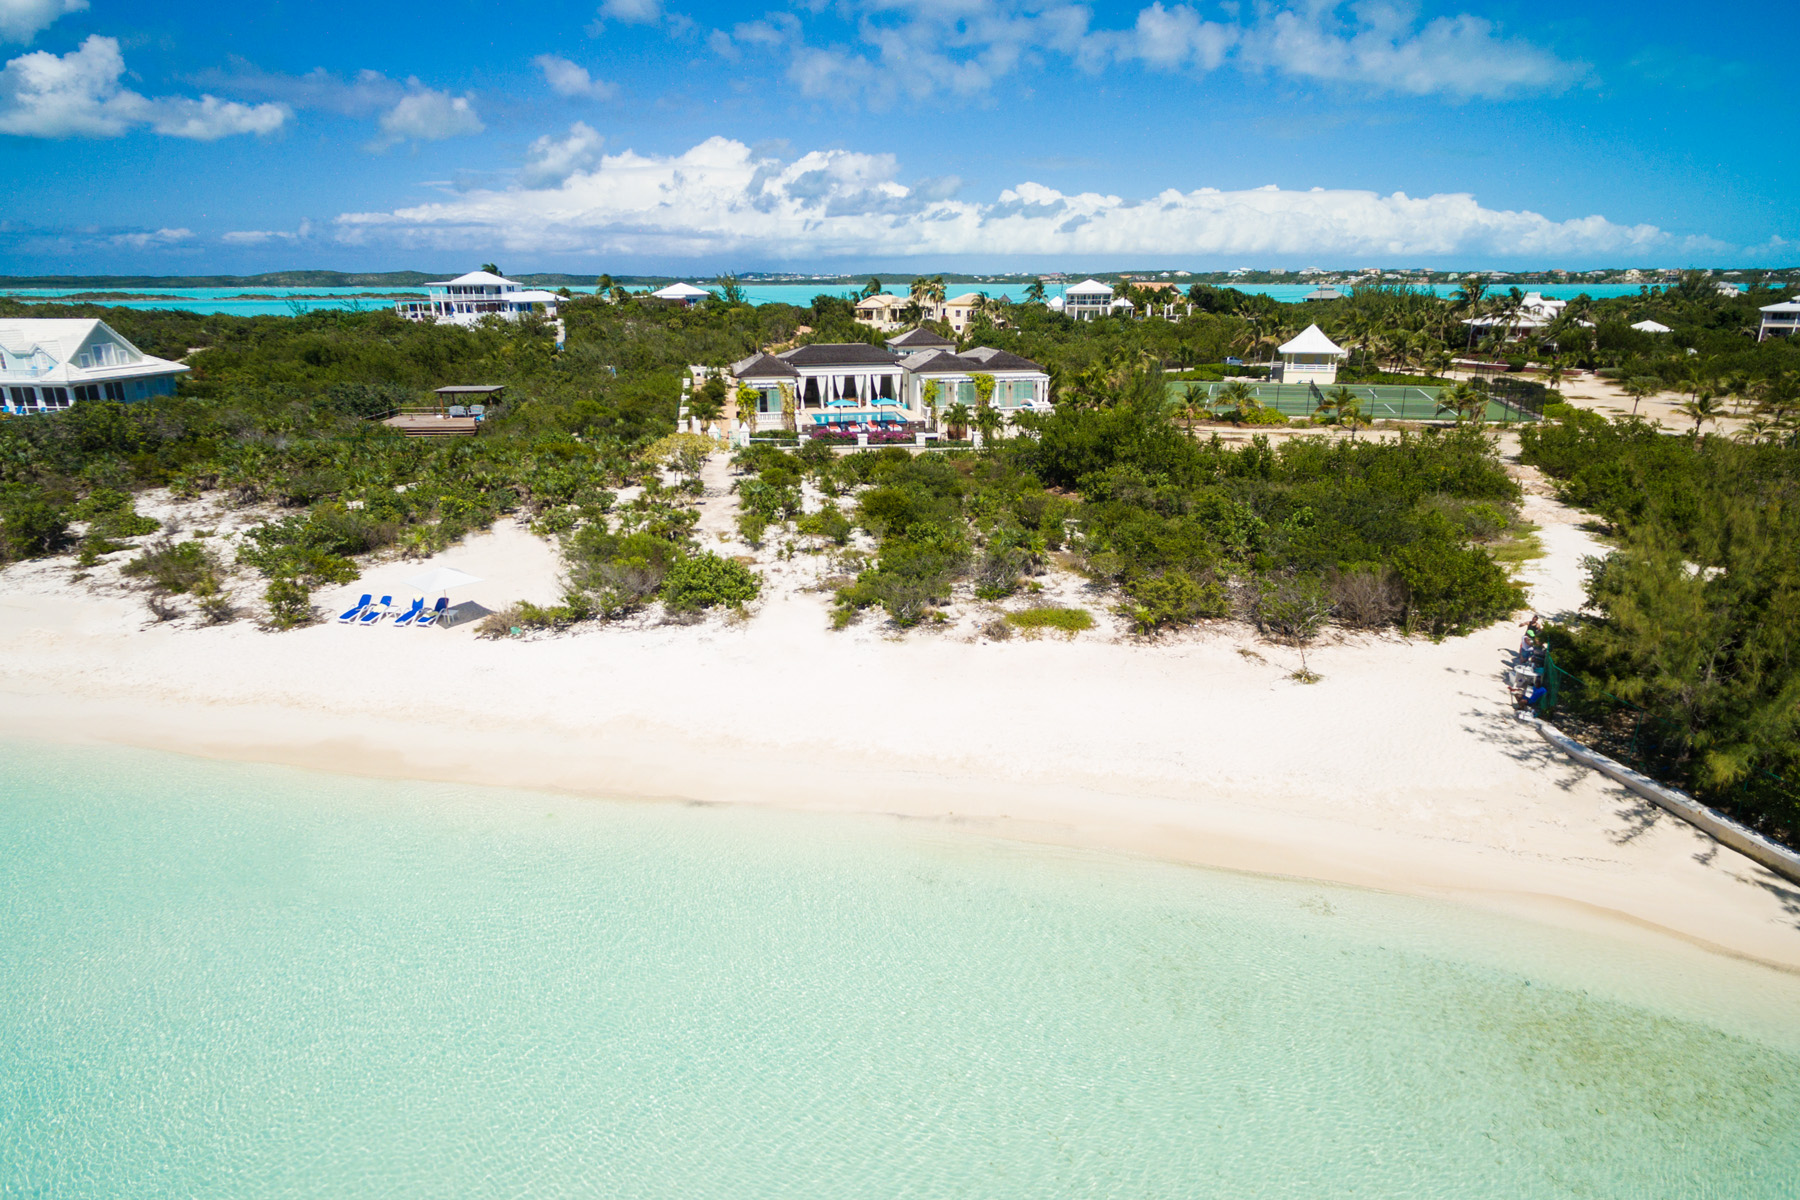 Tek Ailelik Ev için Satış at The Beach House Beachfront Taylor Bay, Providenciales, TCI Turks Ve Caicos Adalari